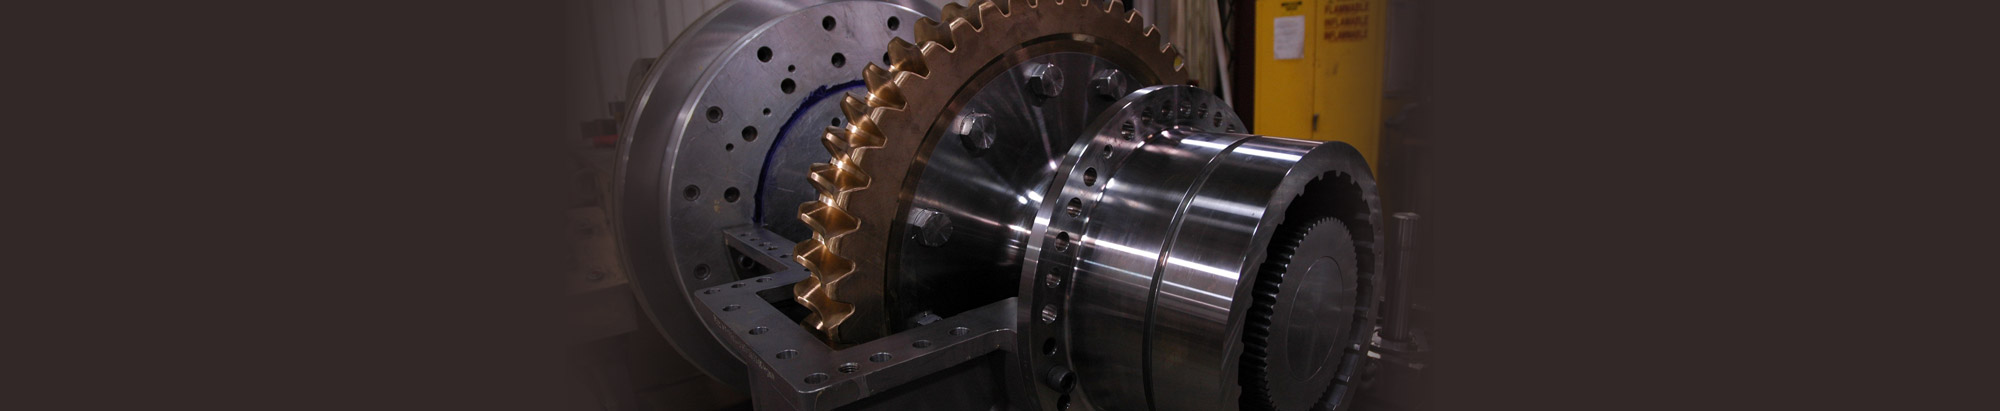 A Large Gear on a Machine